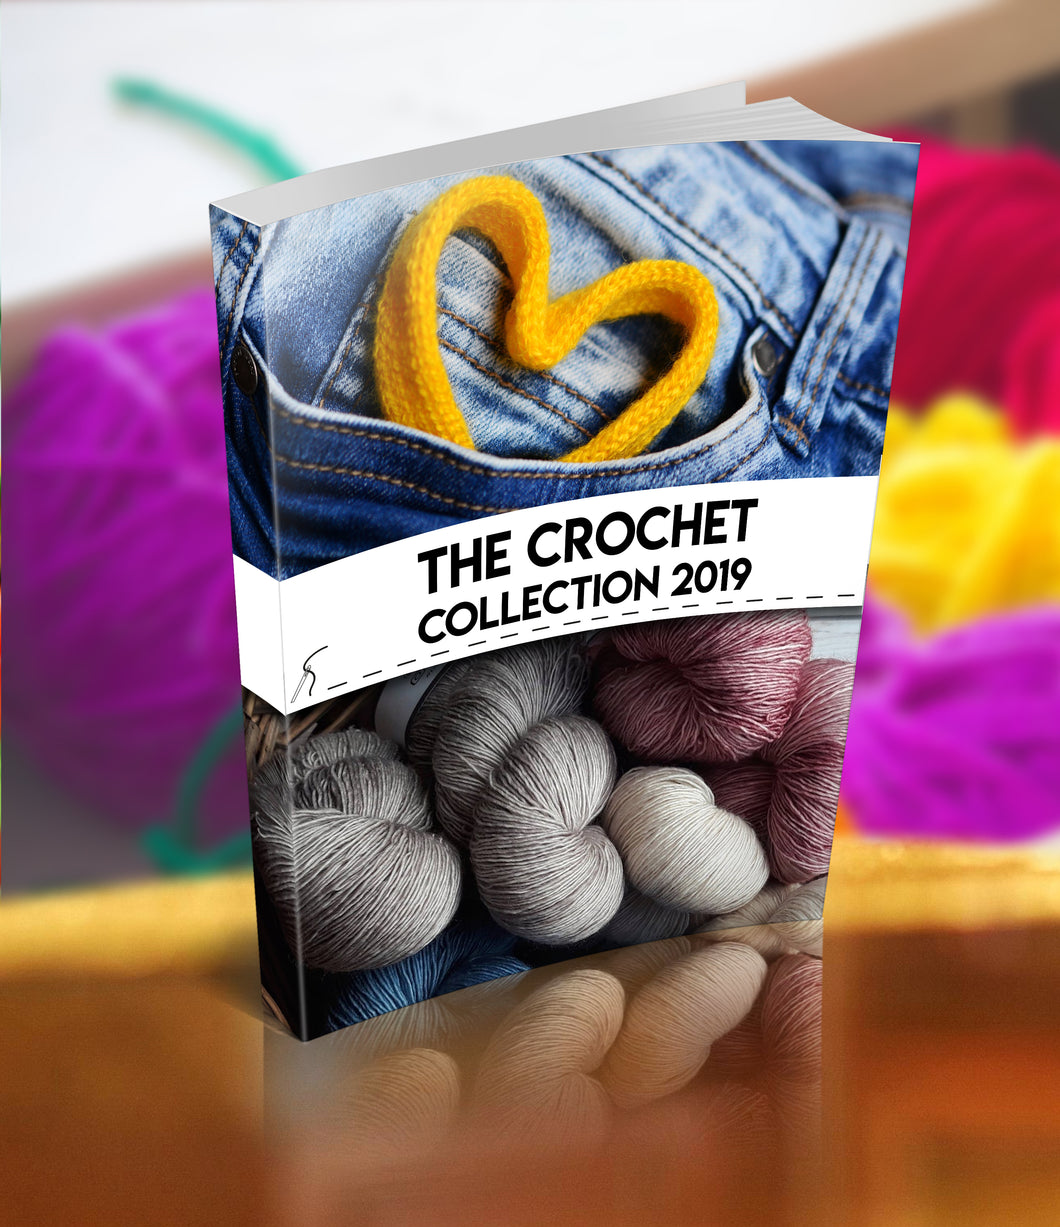 Brand New! The Crochet Collection 2019 - Super Sale